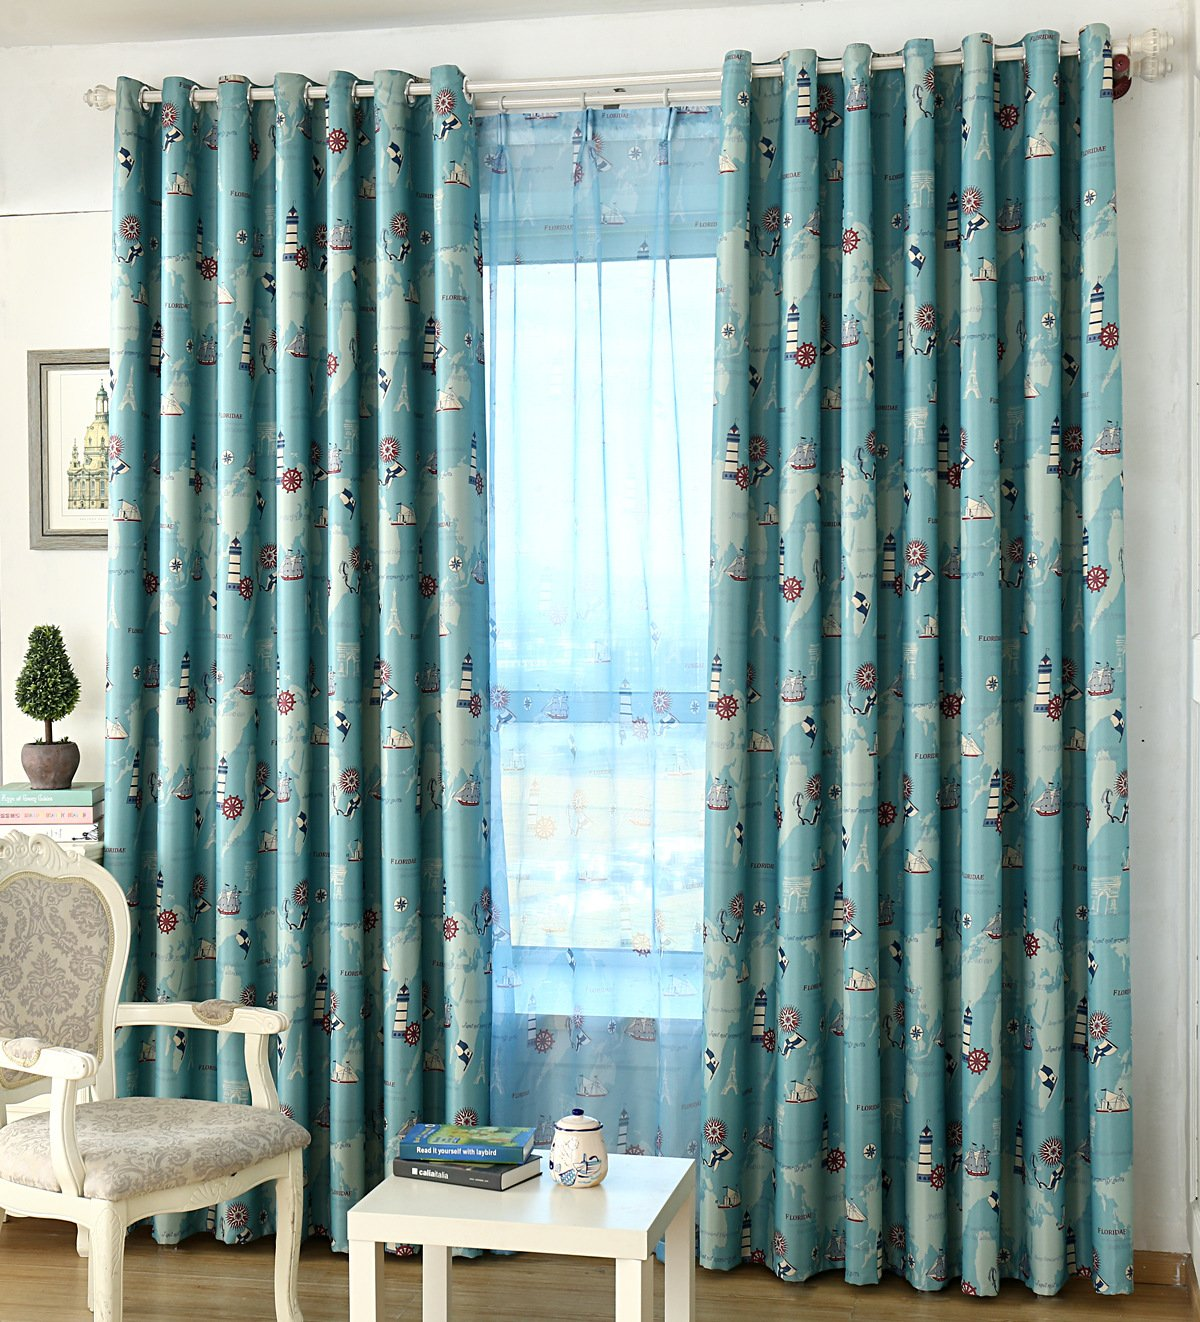 ZWB Room Darkening Window Treatment Kids Children Room Grommet Top Blackout Curtains Thermal Insulated Nautical Vessel Rudder Panel for Children Boys Bedroom Living Room 1 Panel W39 x L84 Inch